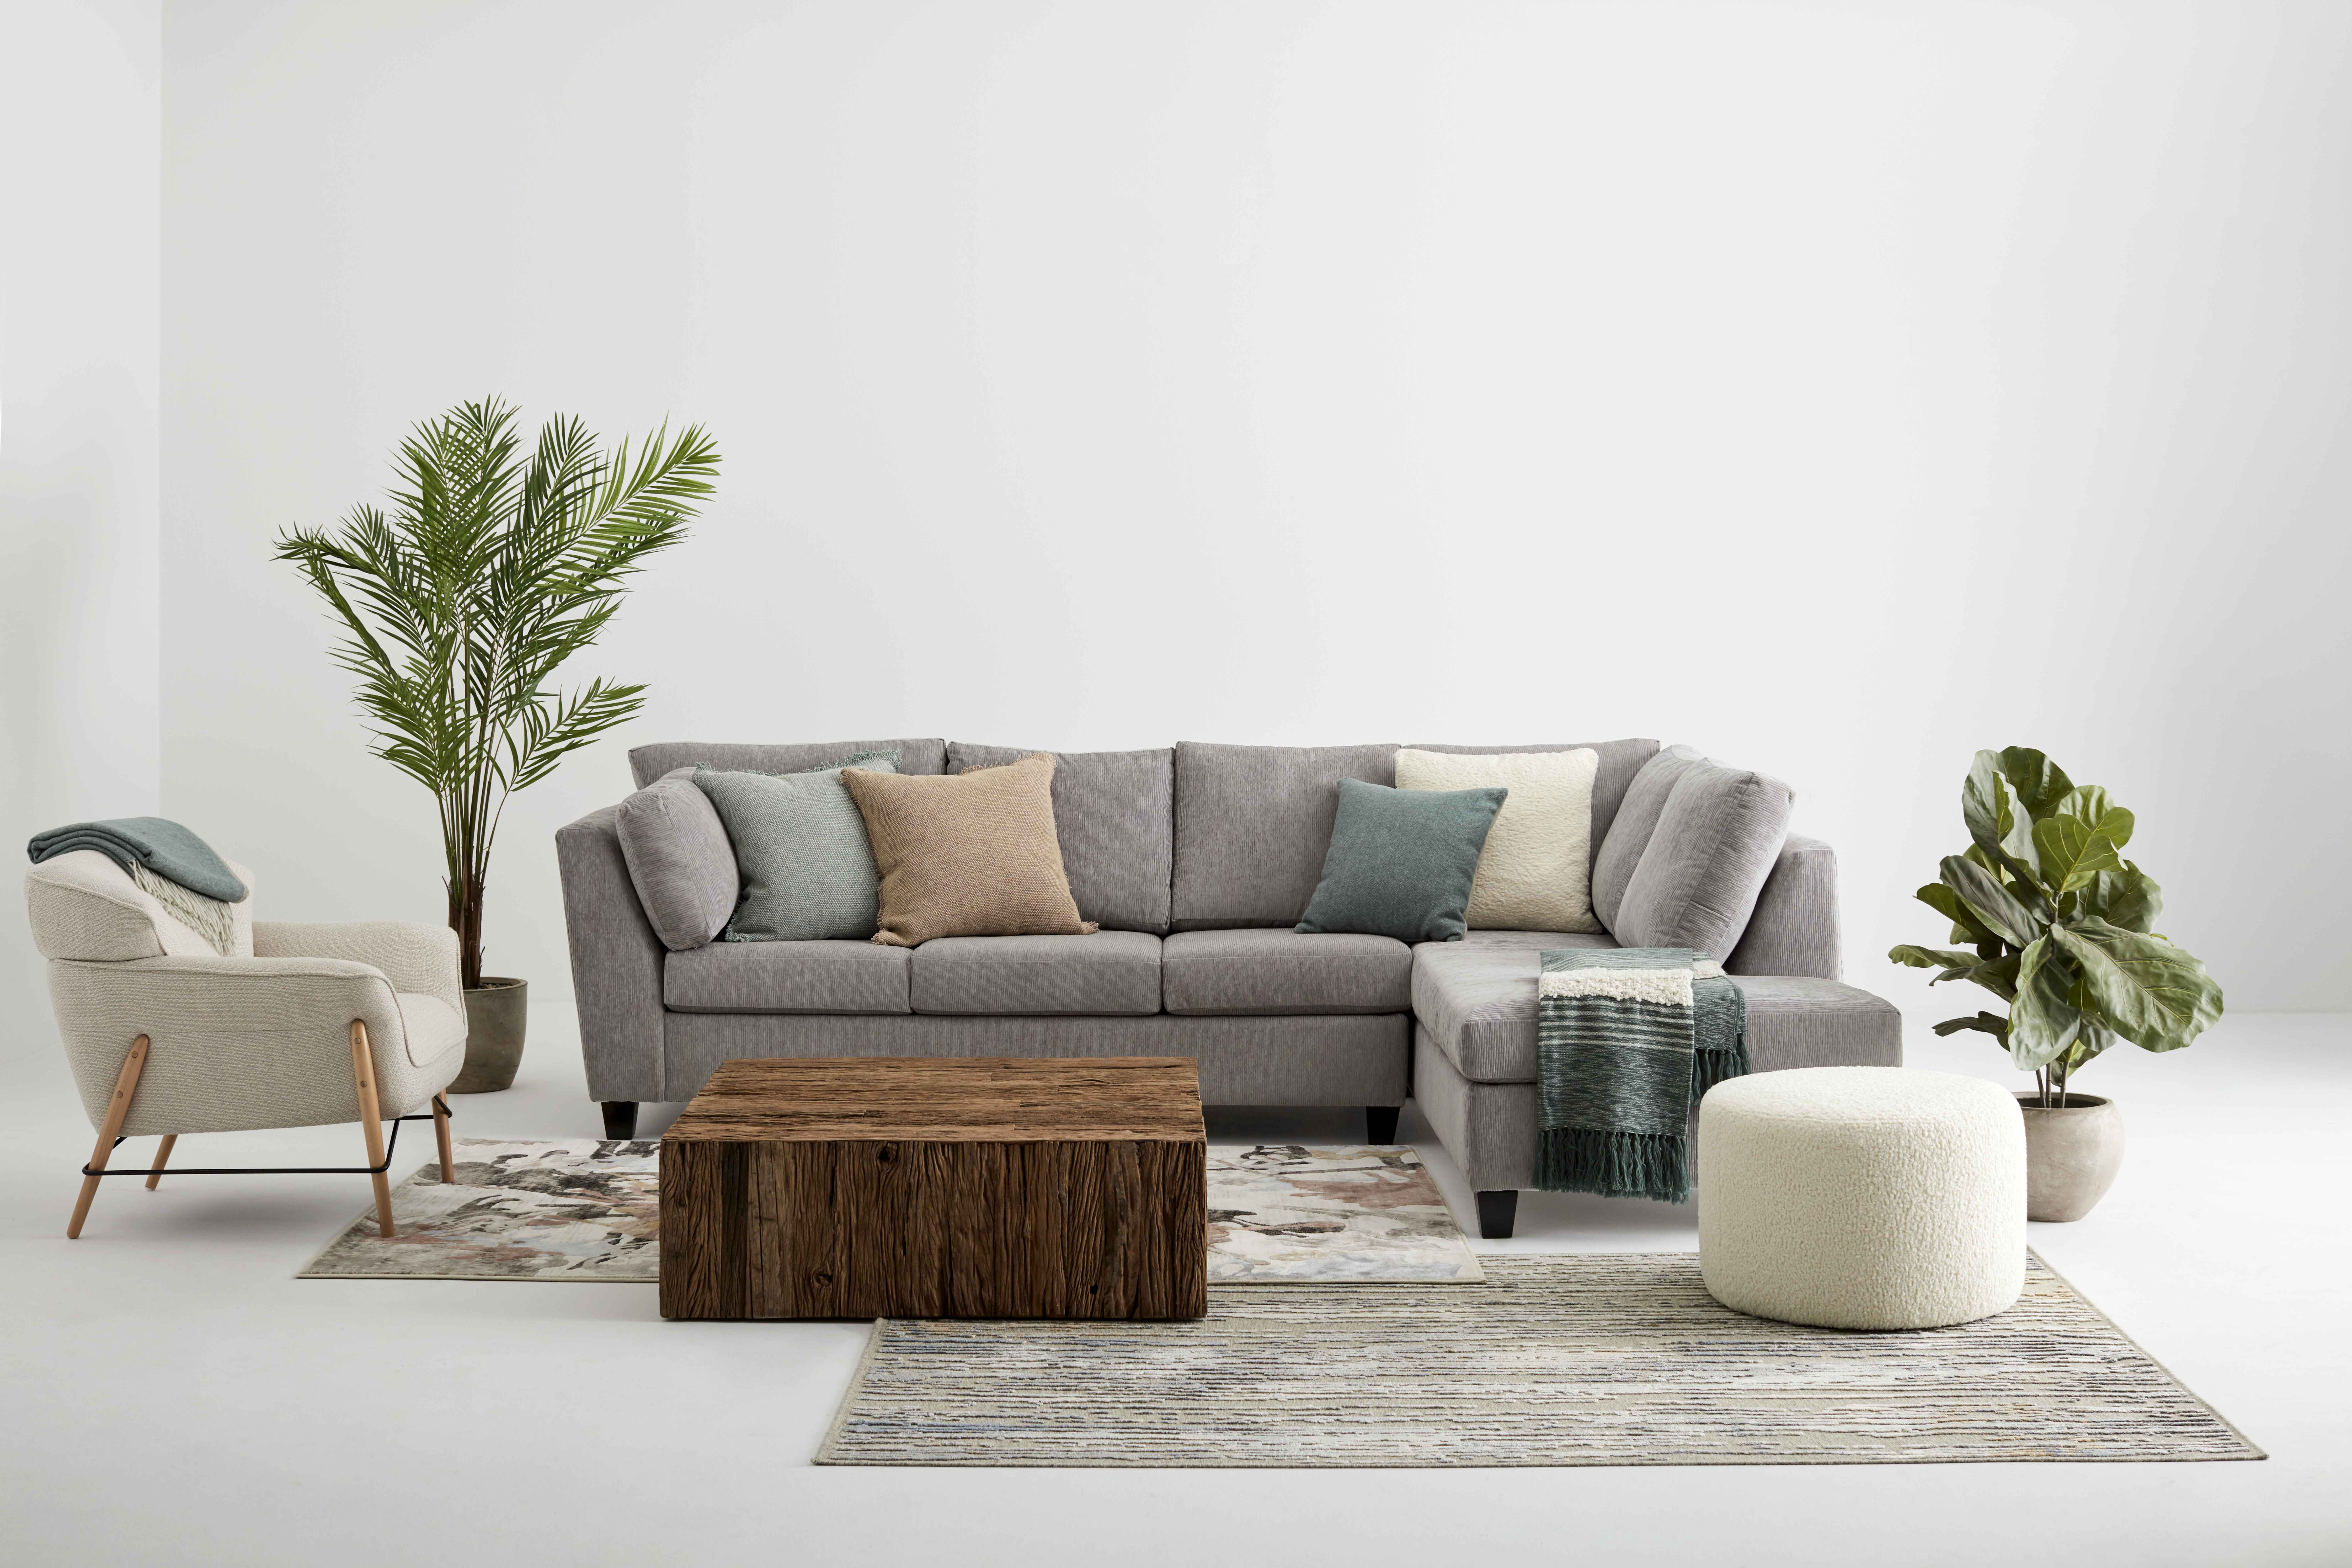 """View on a living room composed of a fabric sofa, a cosy accent chair and a """"sheep's wool"""" ottoman. Cushions and throws are accumulated on the sofa. On the floor, two carpets are layered"""